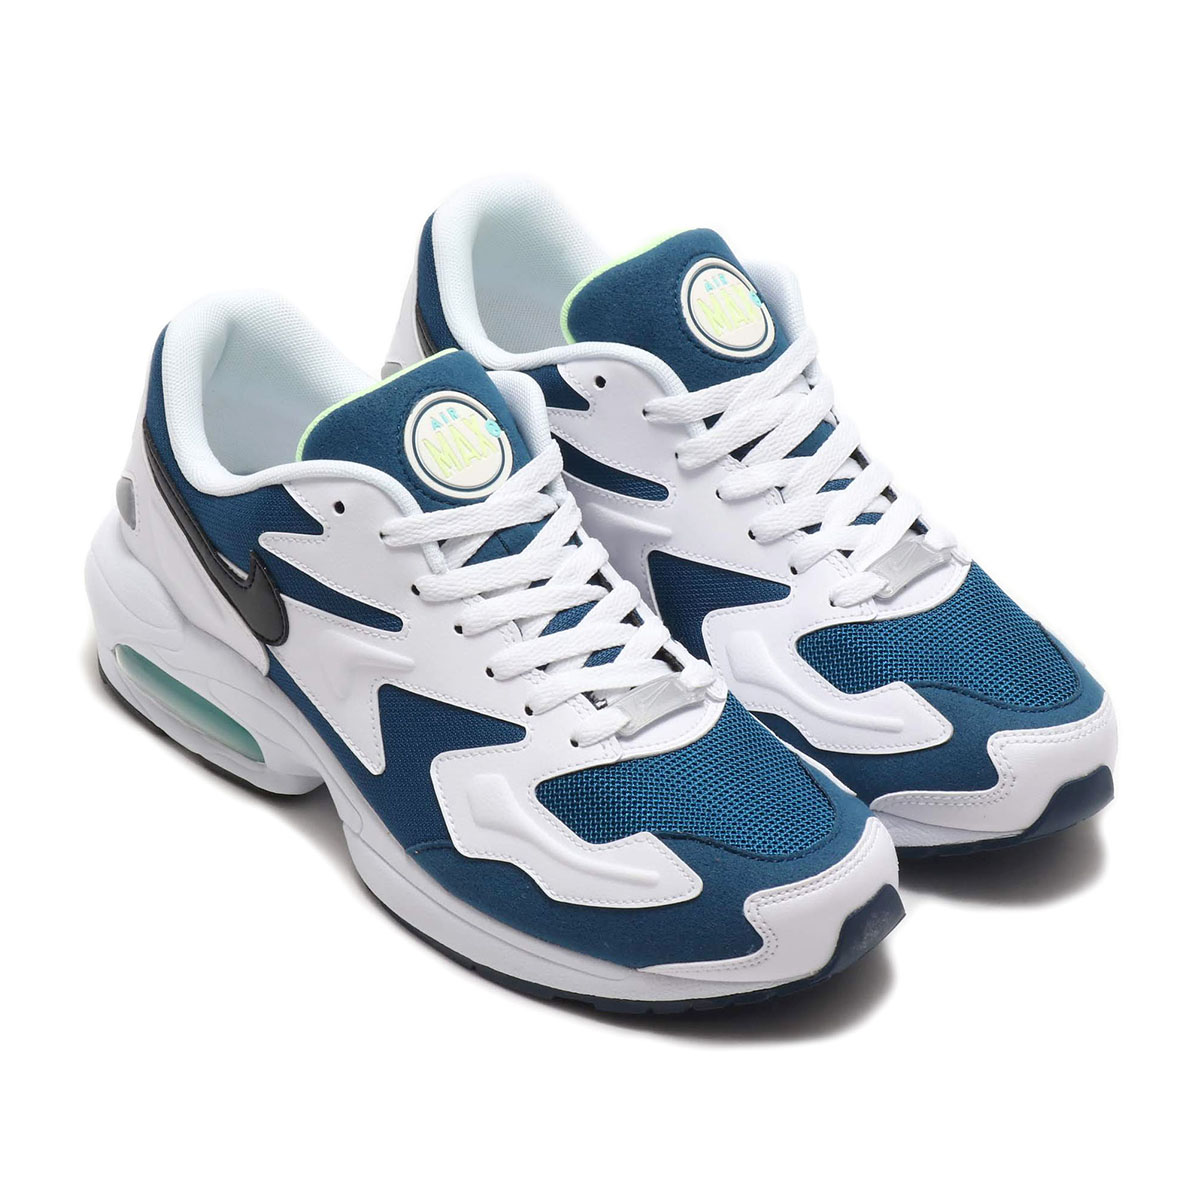 NIKE AIR MAX2 LIGHT(ナイキ エア マックス2 ライト)VALERIAN BLUE/BLACK-WHITE-AURORA GREEN【メンズ スニーカー】20SP-I